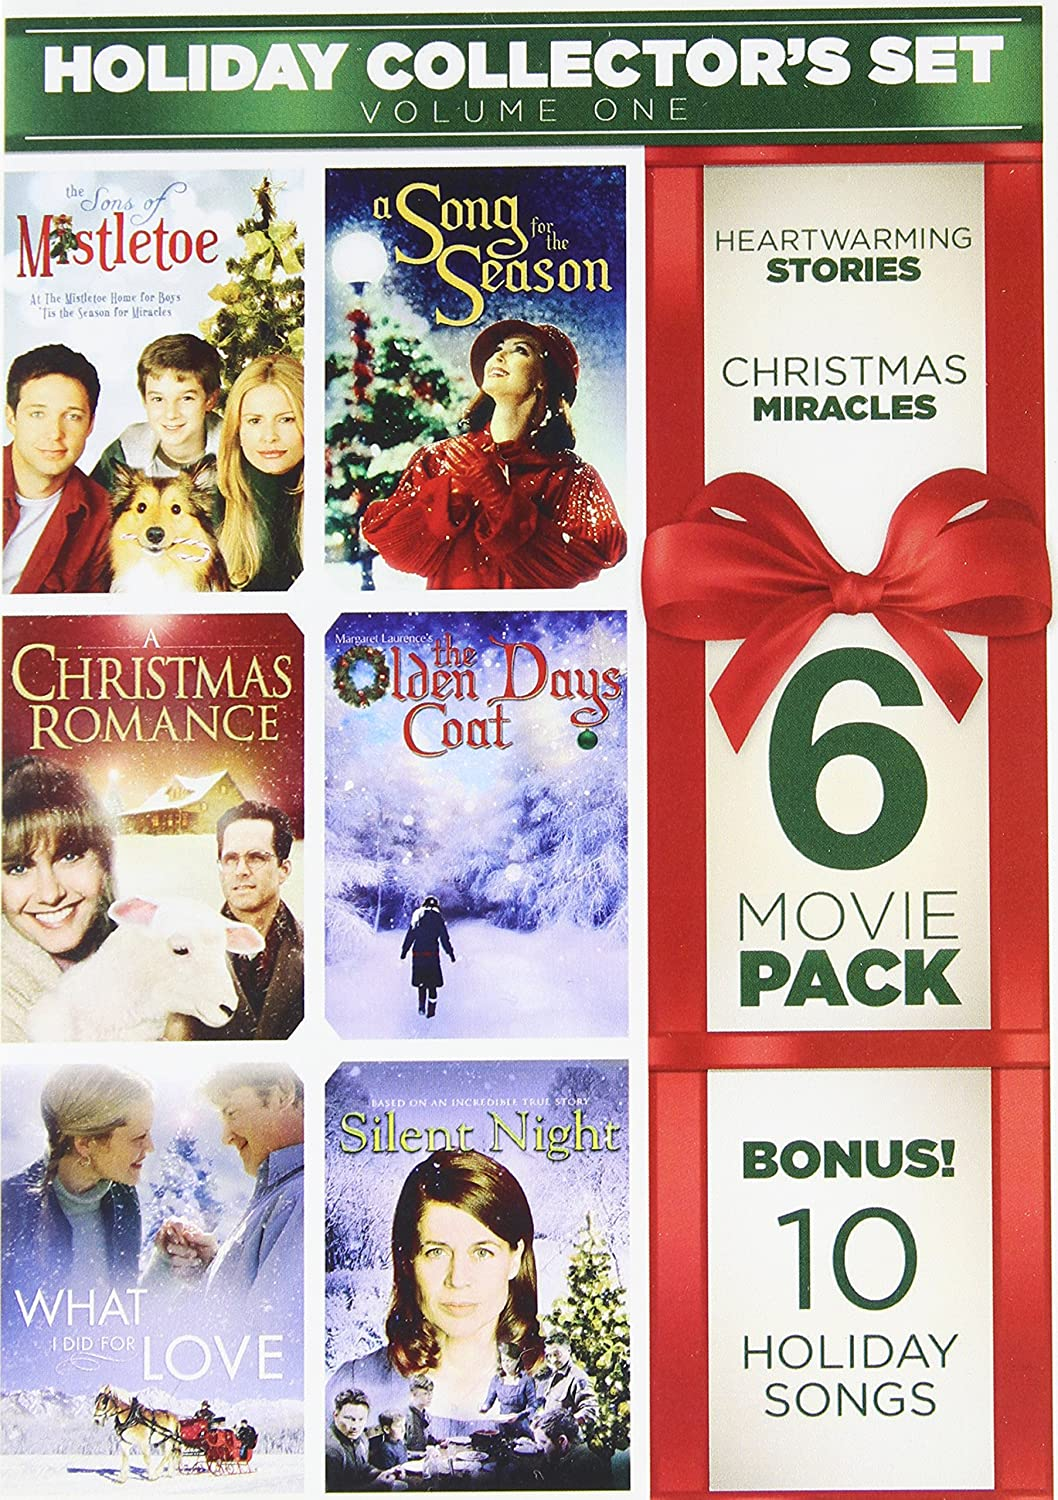 6-Film Holiday Collector's Set V.1 Bonus Audio(MP3): Christmas at the Fireside